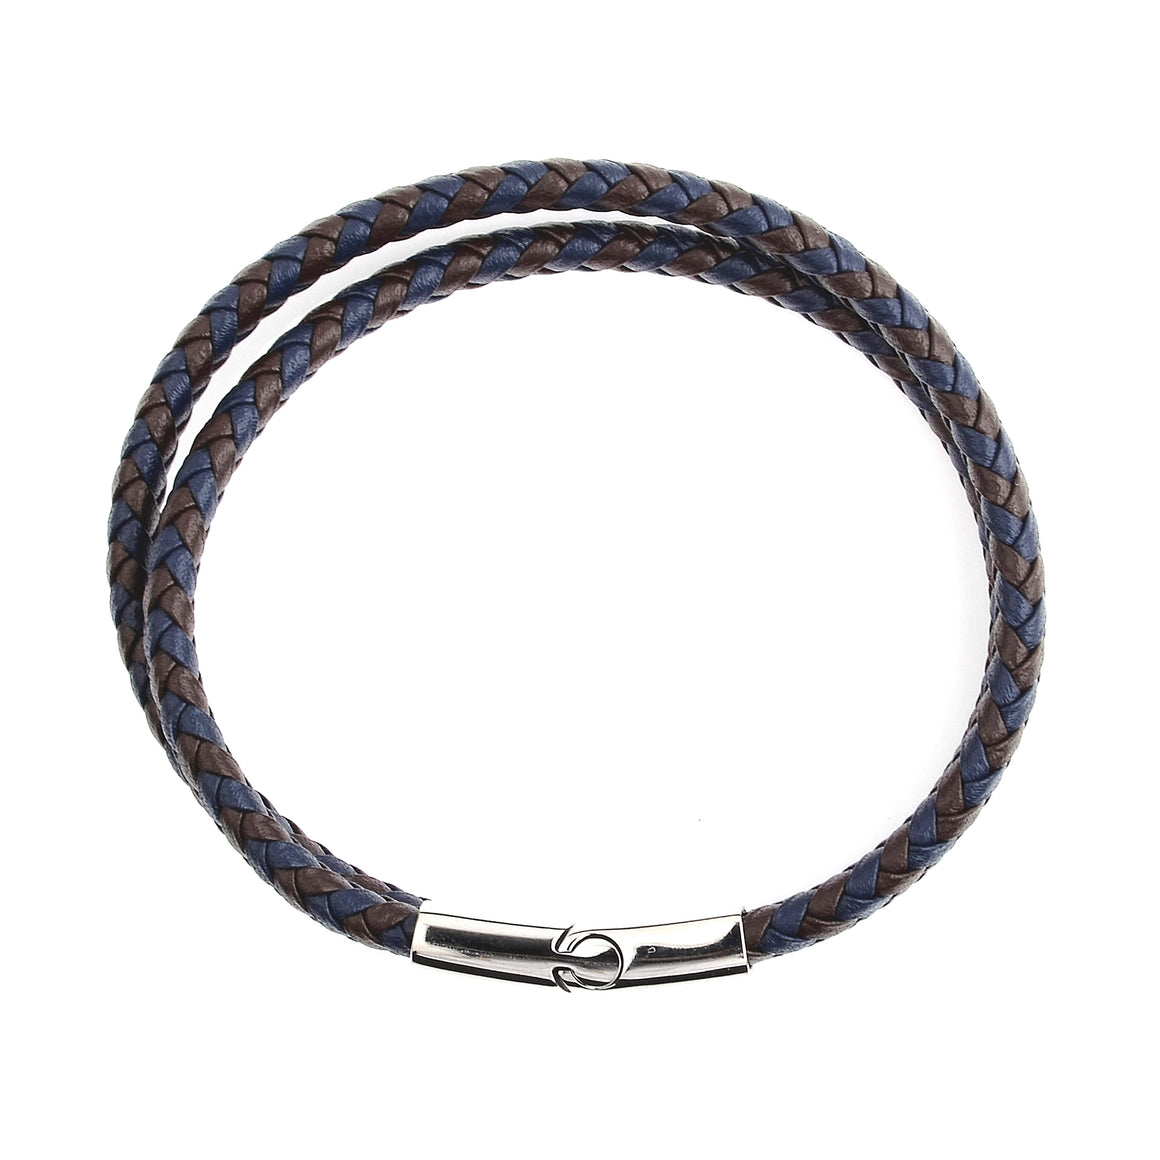 Crucible Men's Blue and Brown Braided Leather Wrap Bracelet